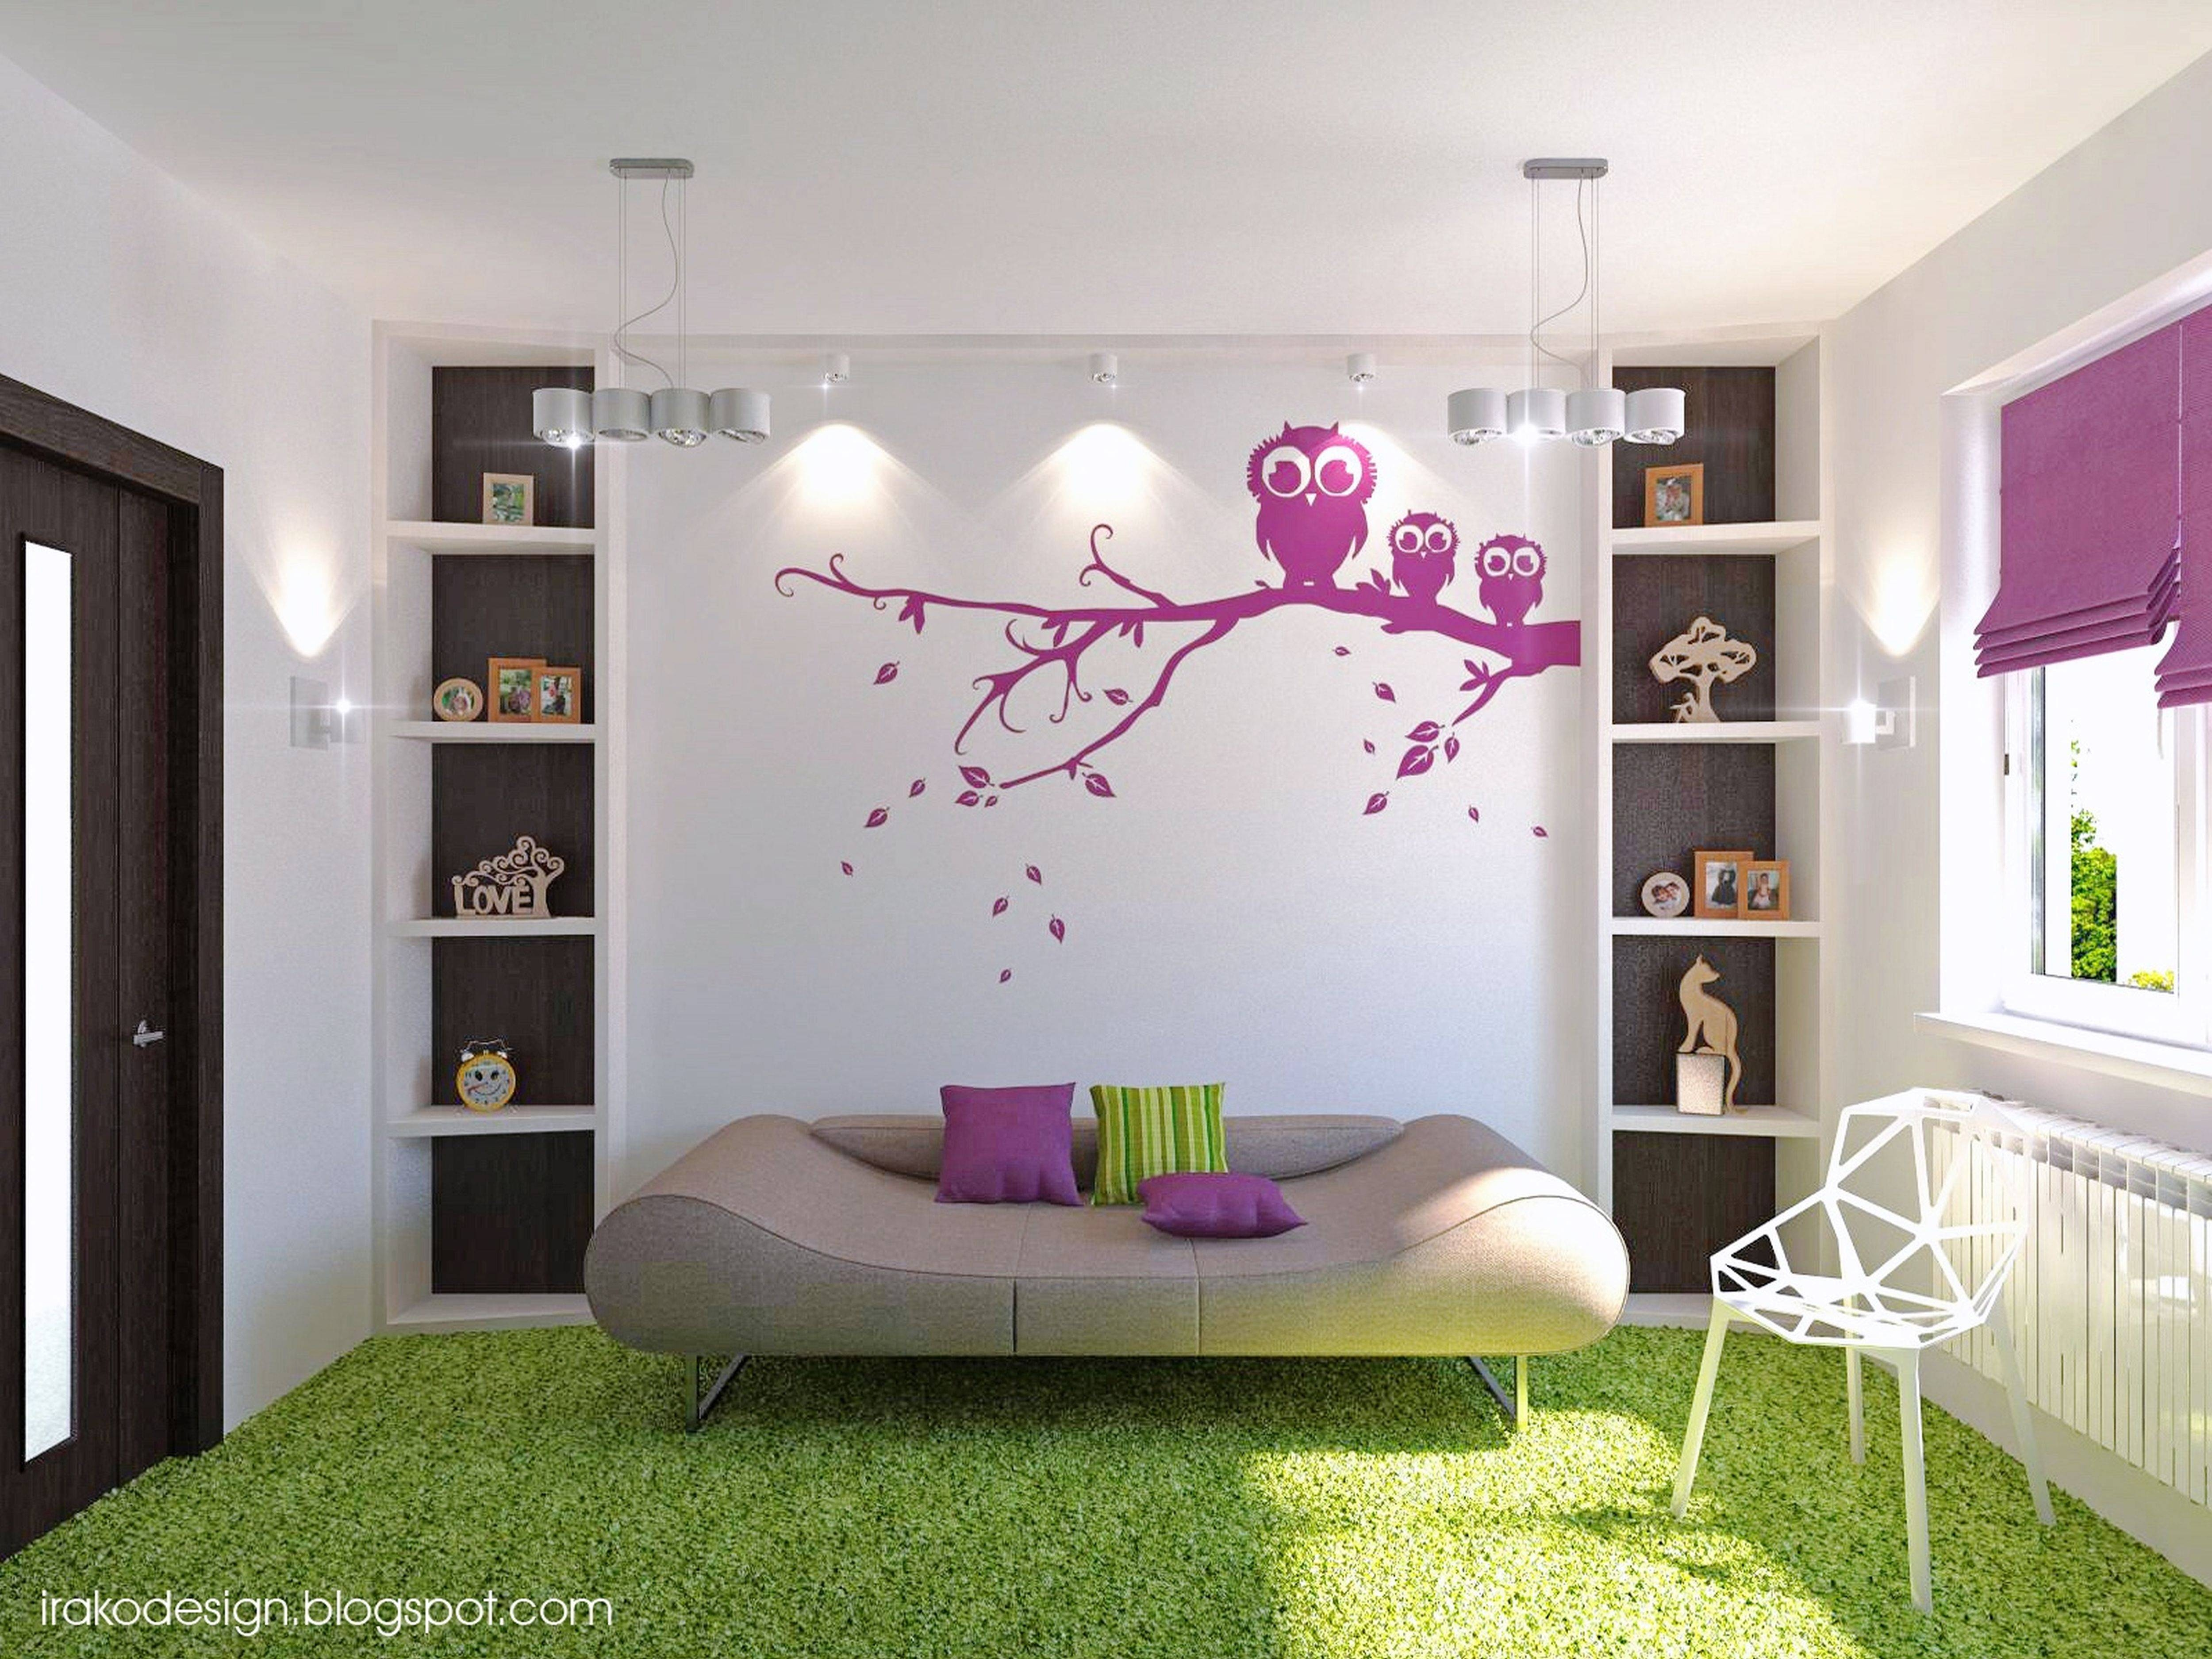 Bedroom : Wall Art Ideas Office Wall Decor Large Wall Paintings Within Latest Black White And Red Wall Art (View 12 of 20)